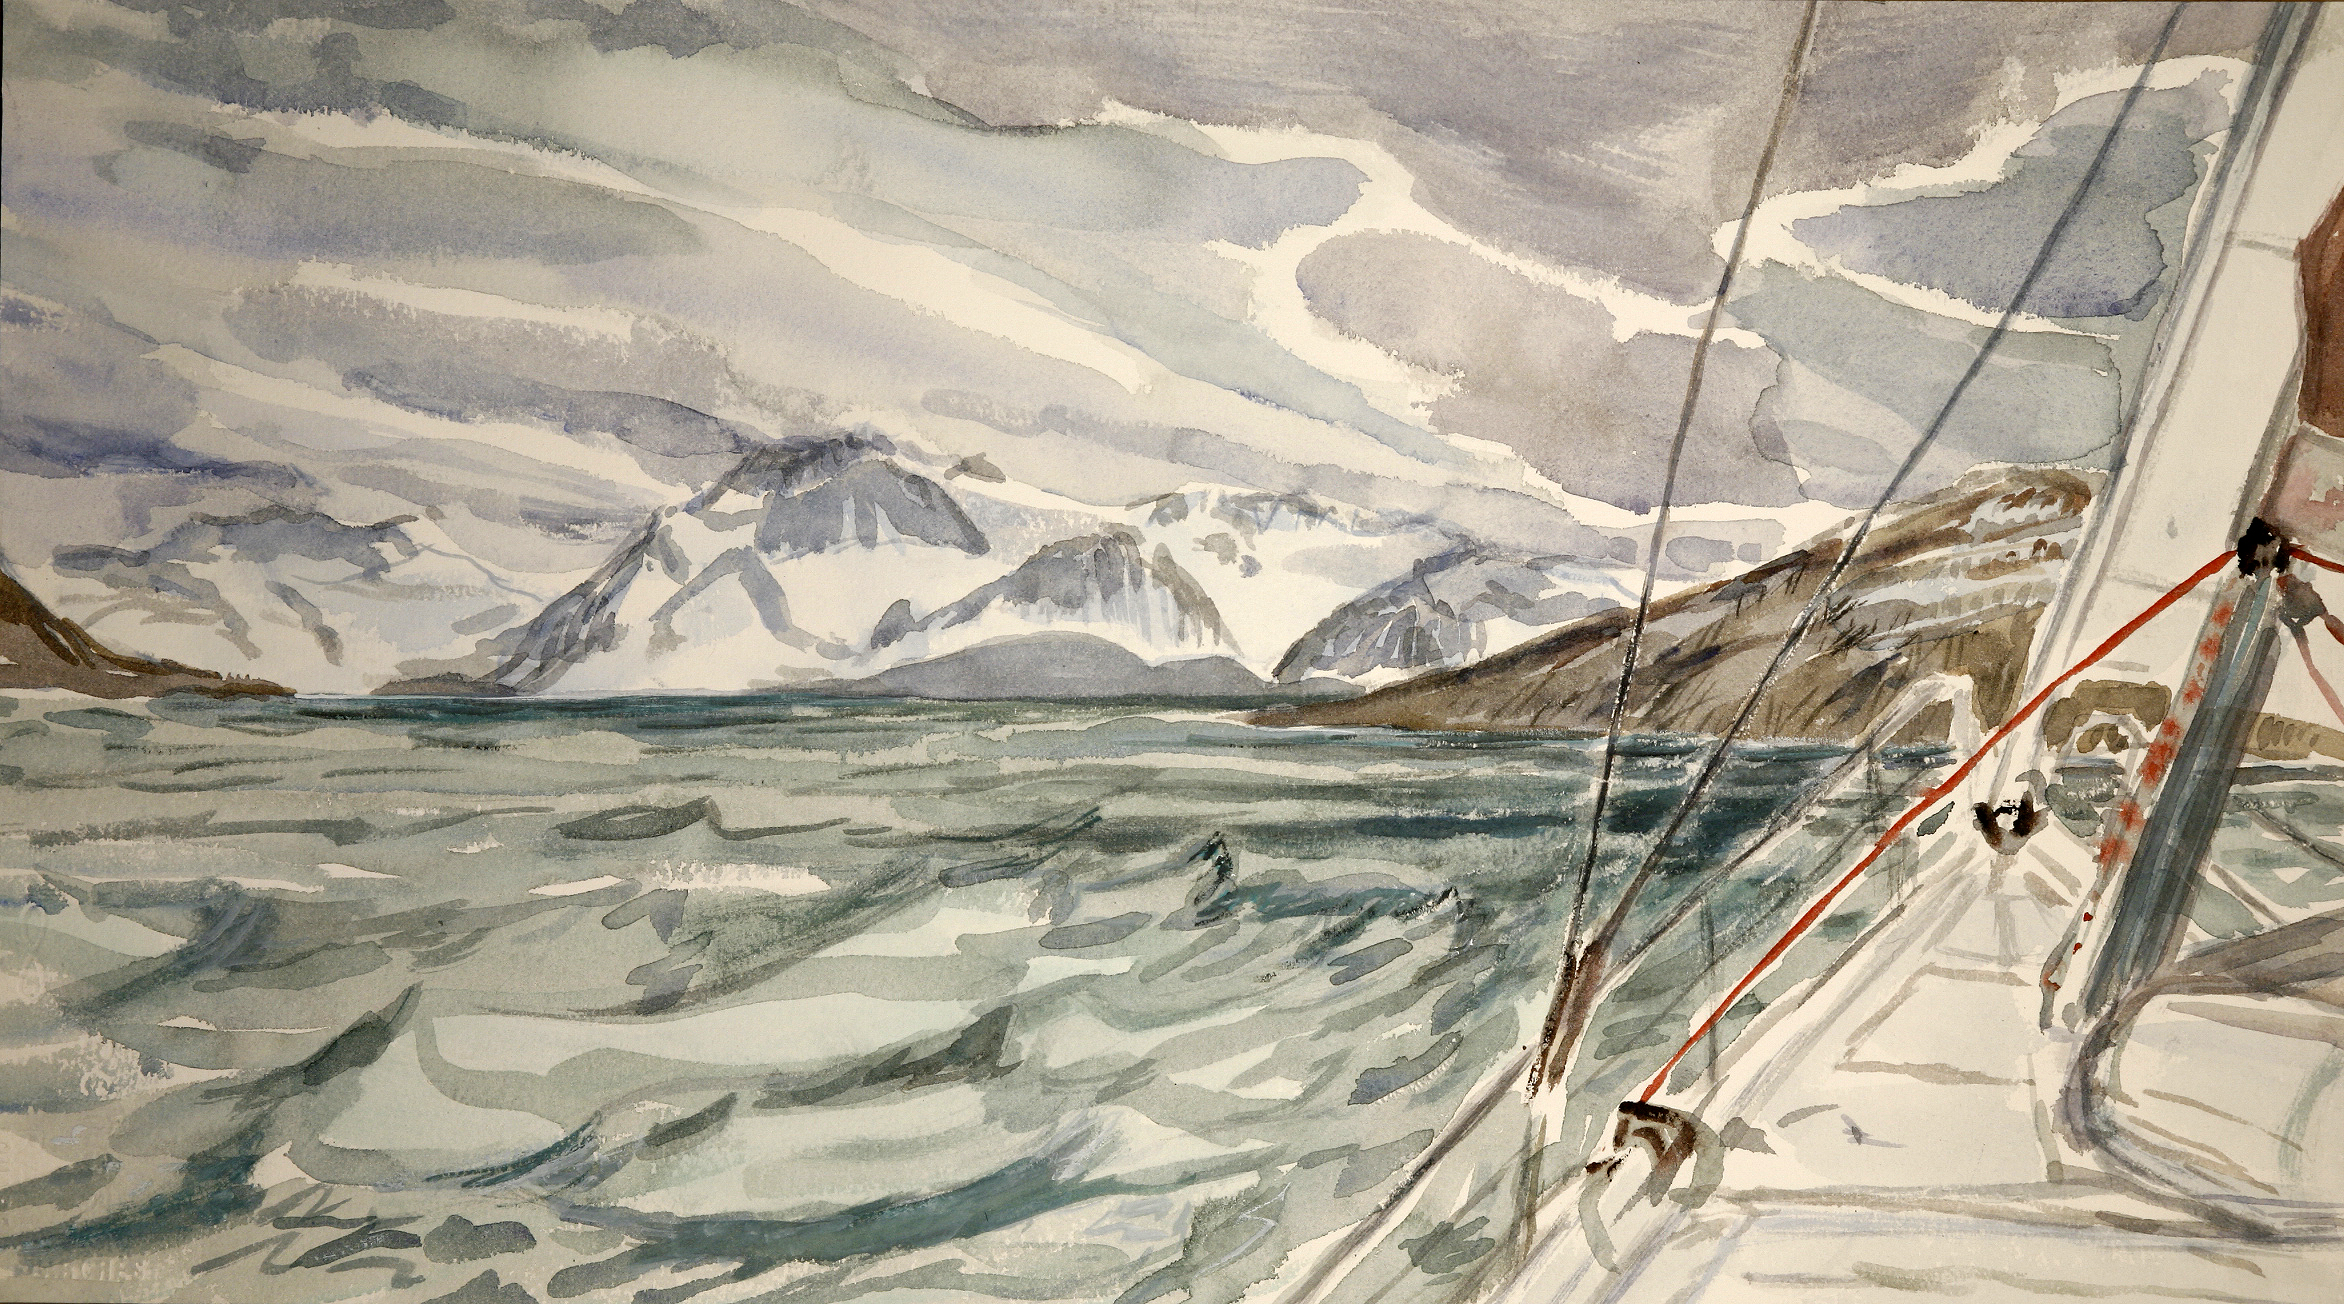 haukoysundet artic ice troms skiing painting ski Norway